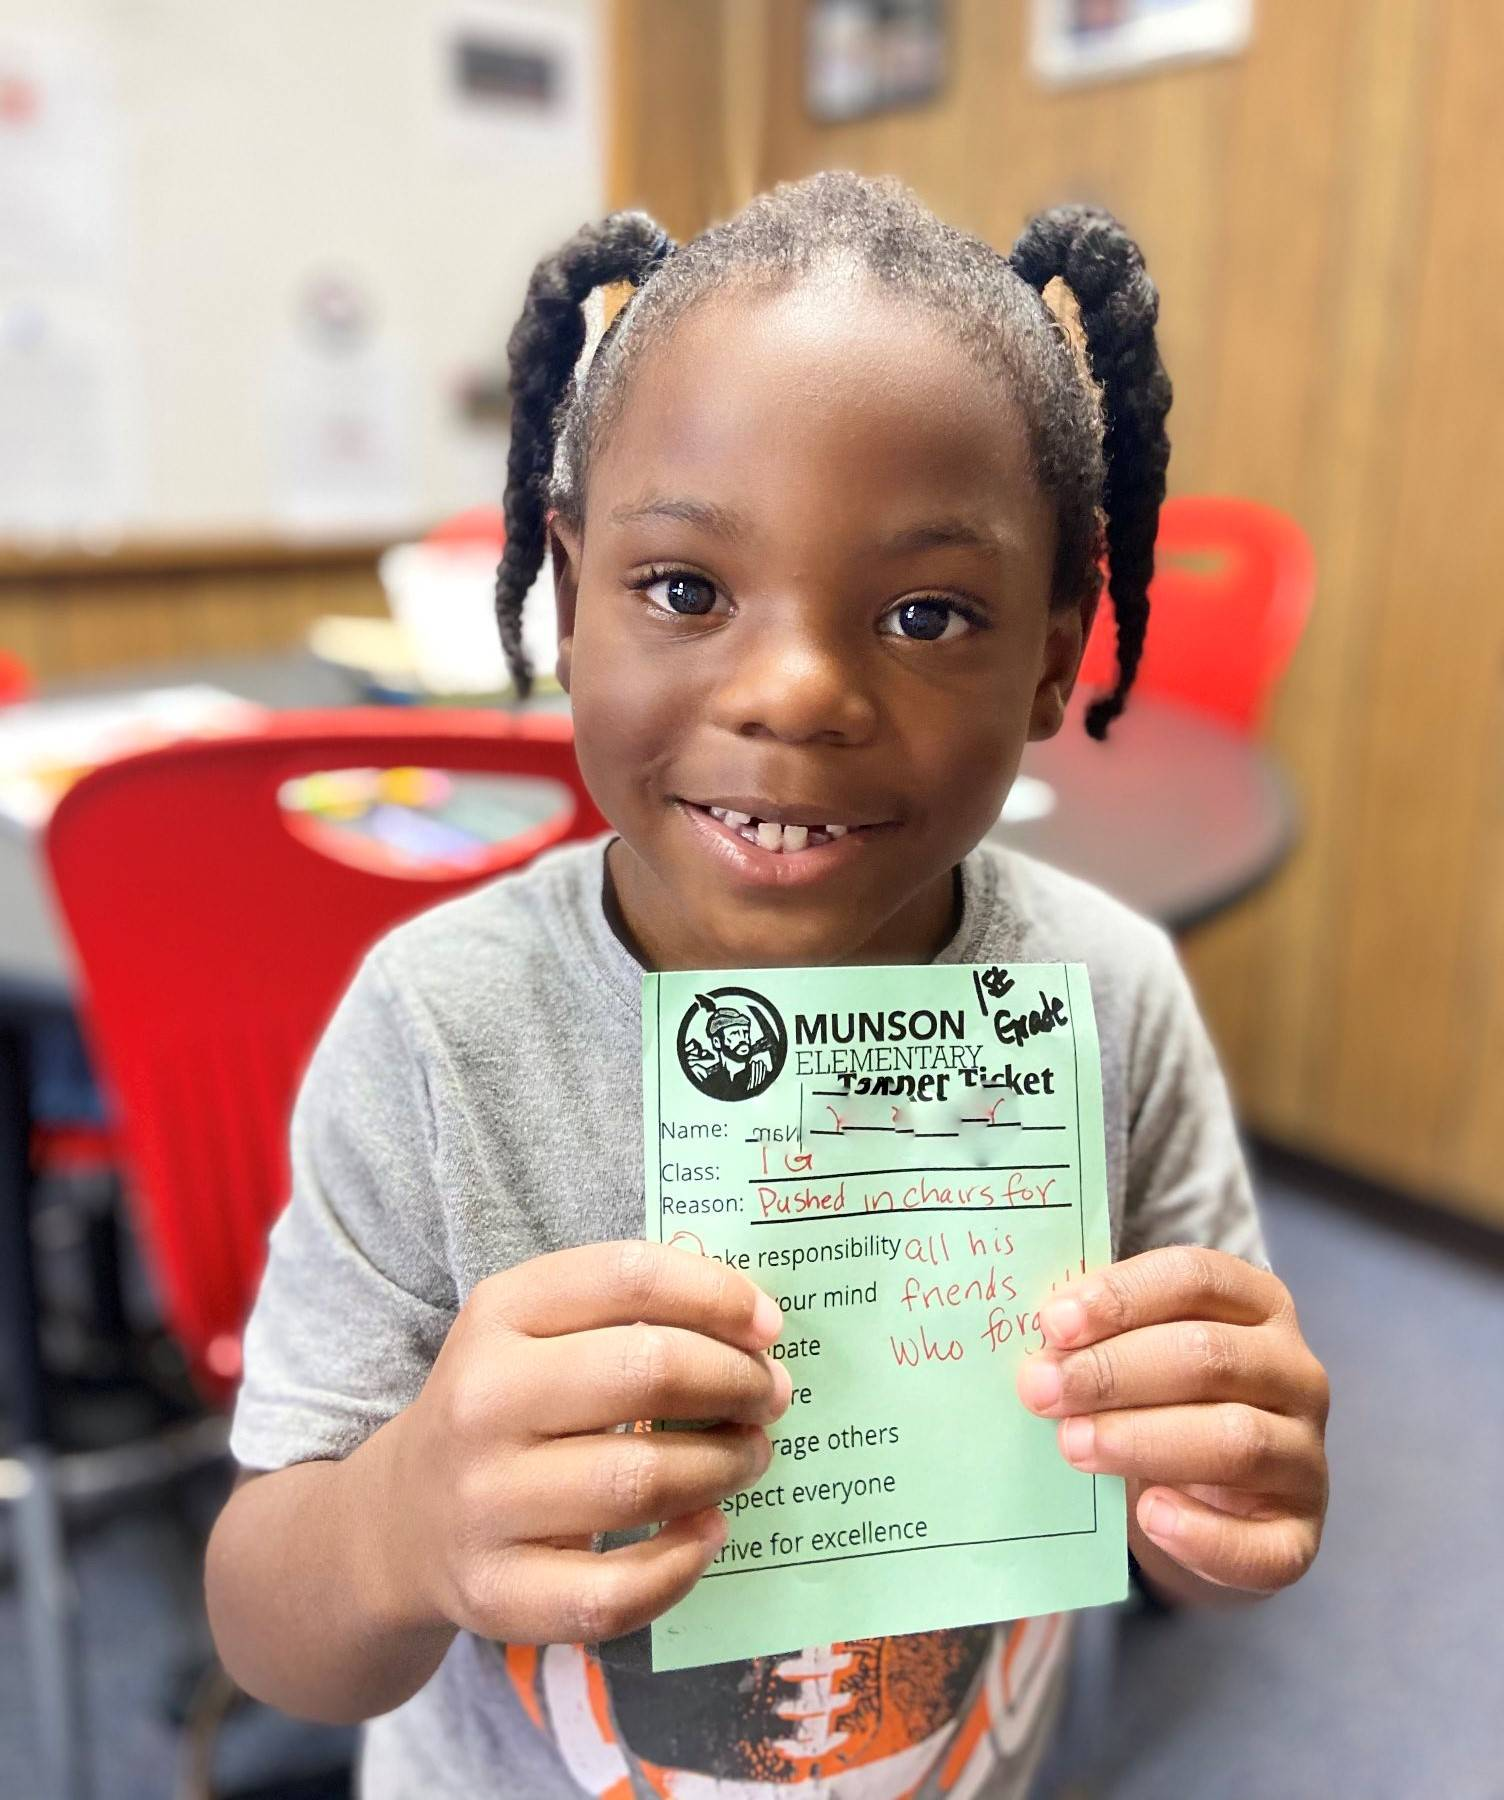 Photo 26:  Munson student smiling for the camera holding a Topper Ticket received for excellent citi